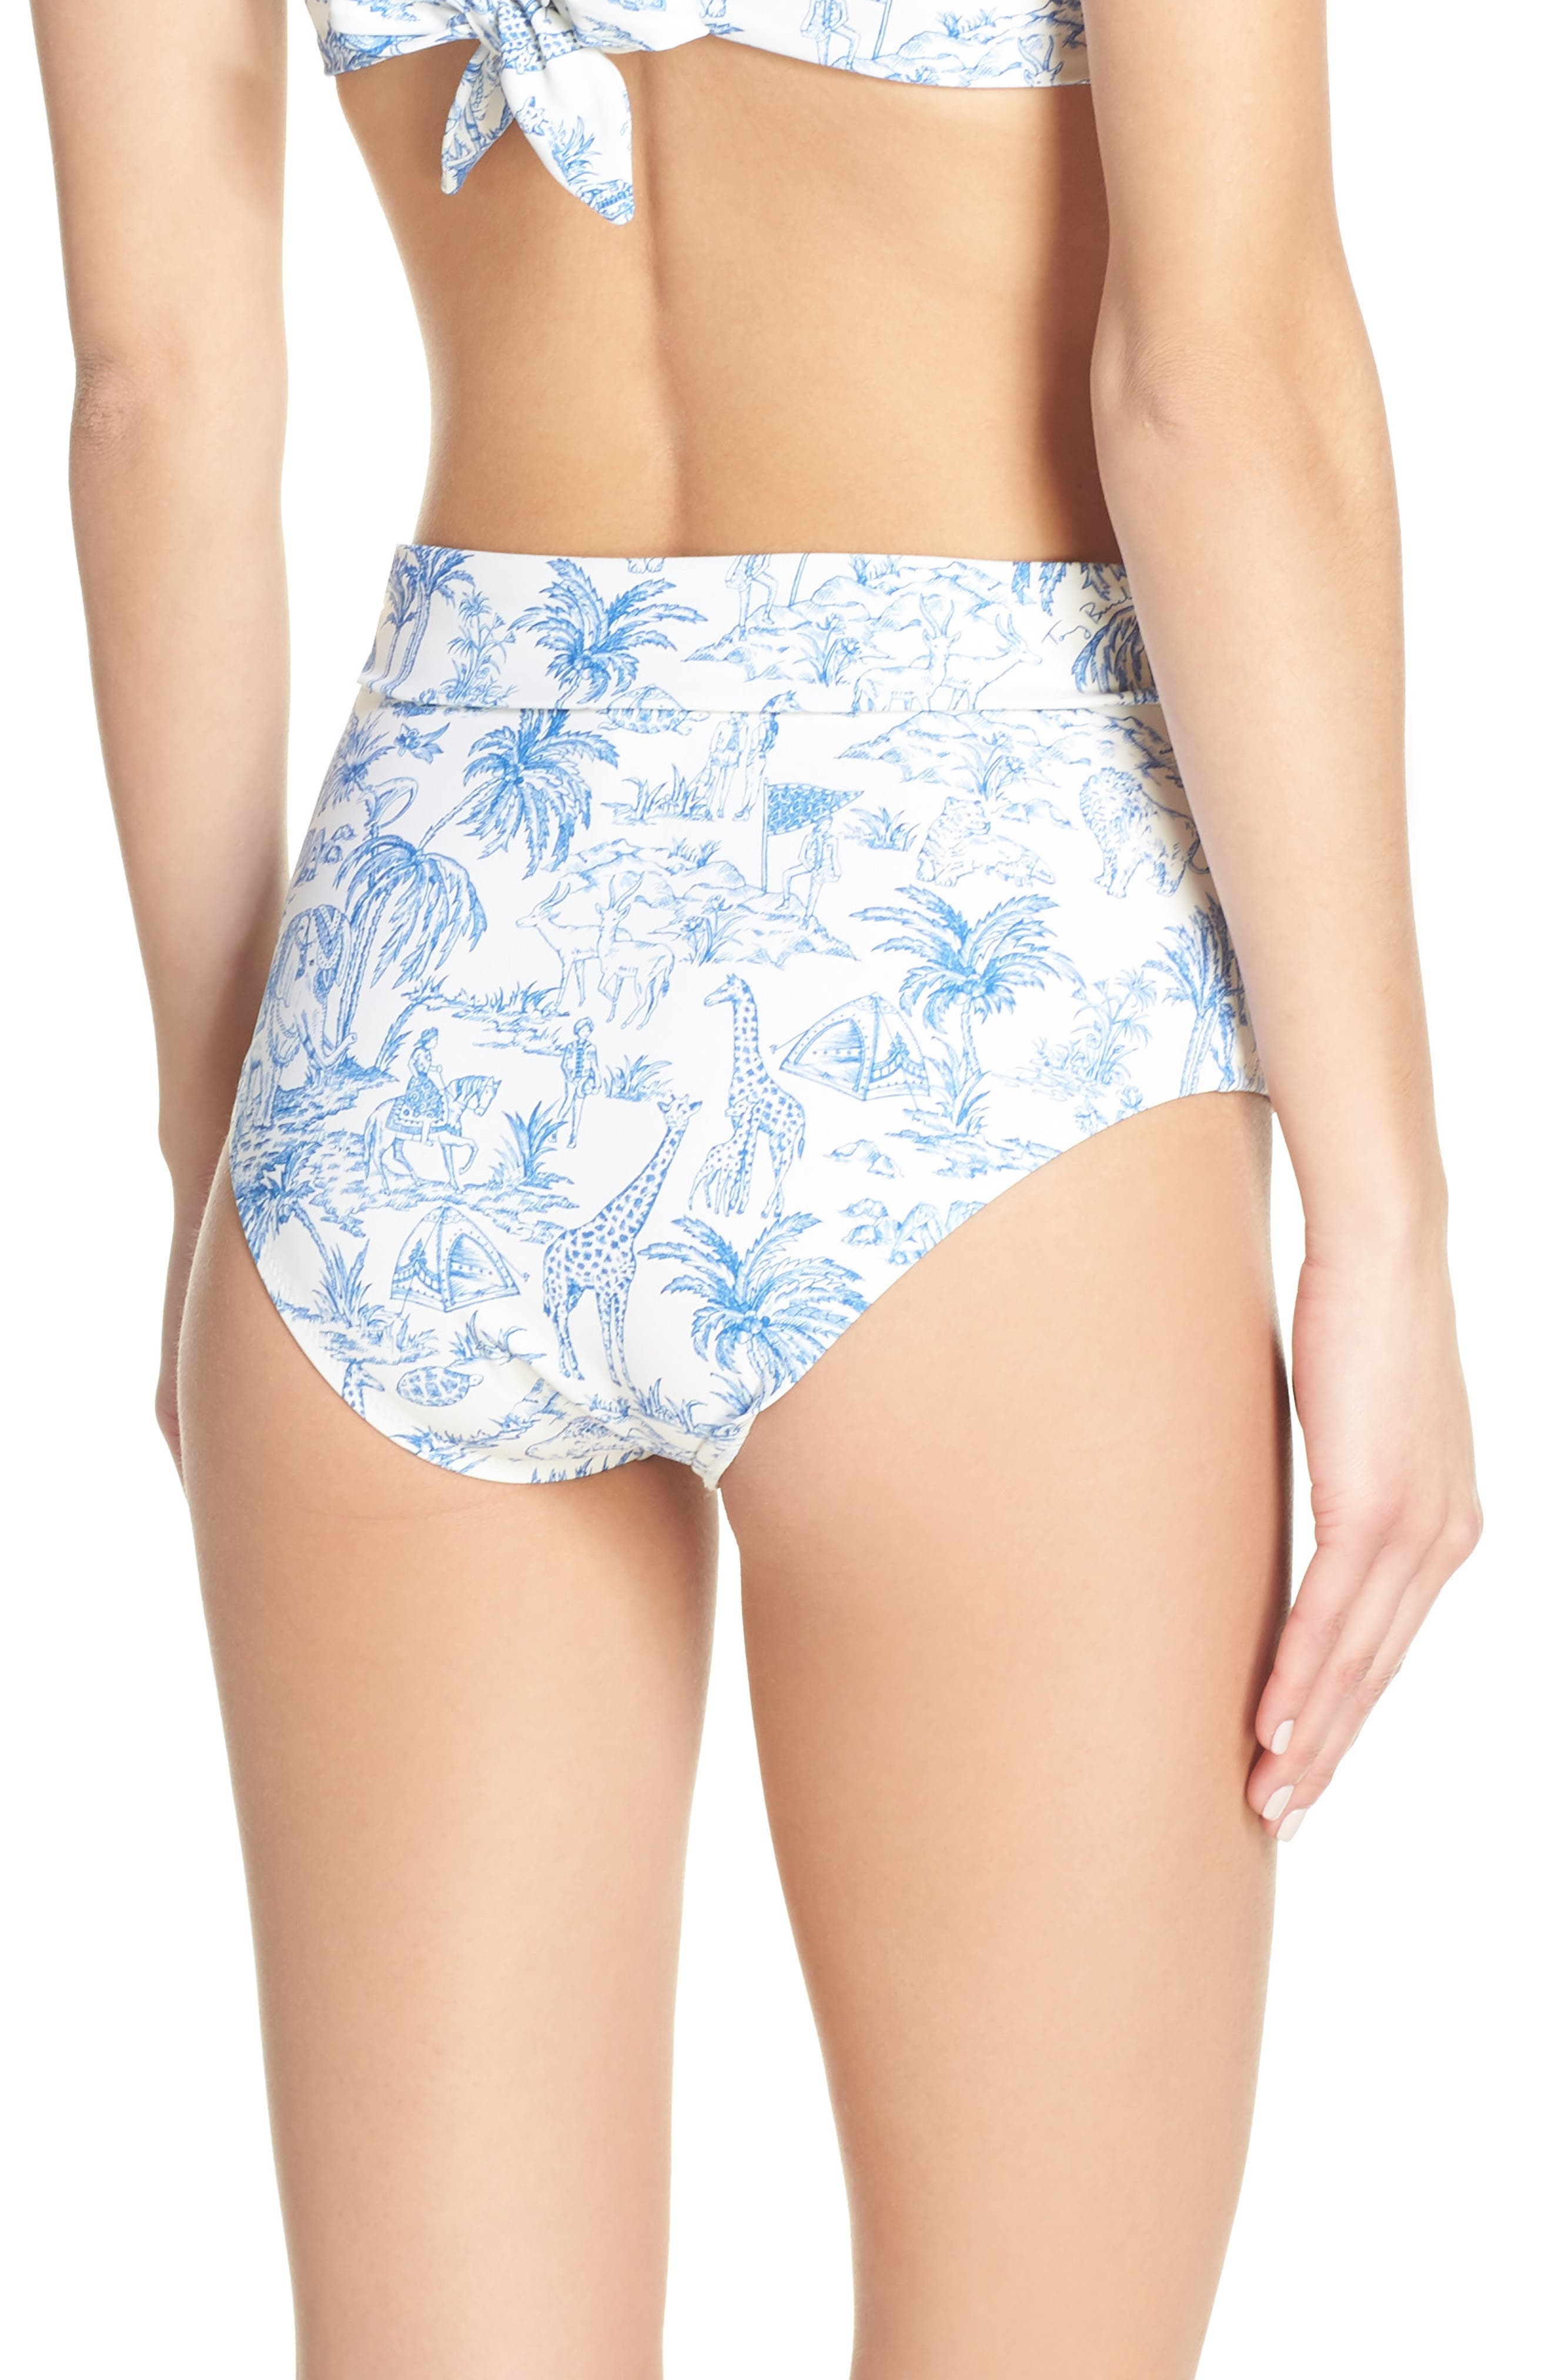 TORY BURCH,                             Sash Tie High Waist Bikini Bottoms,                             Alternate thumbnail 2, color,                             IVORY FAR AND AWAY